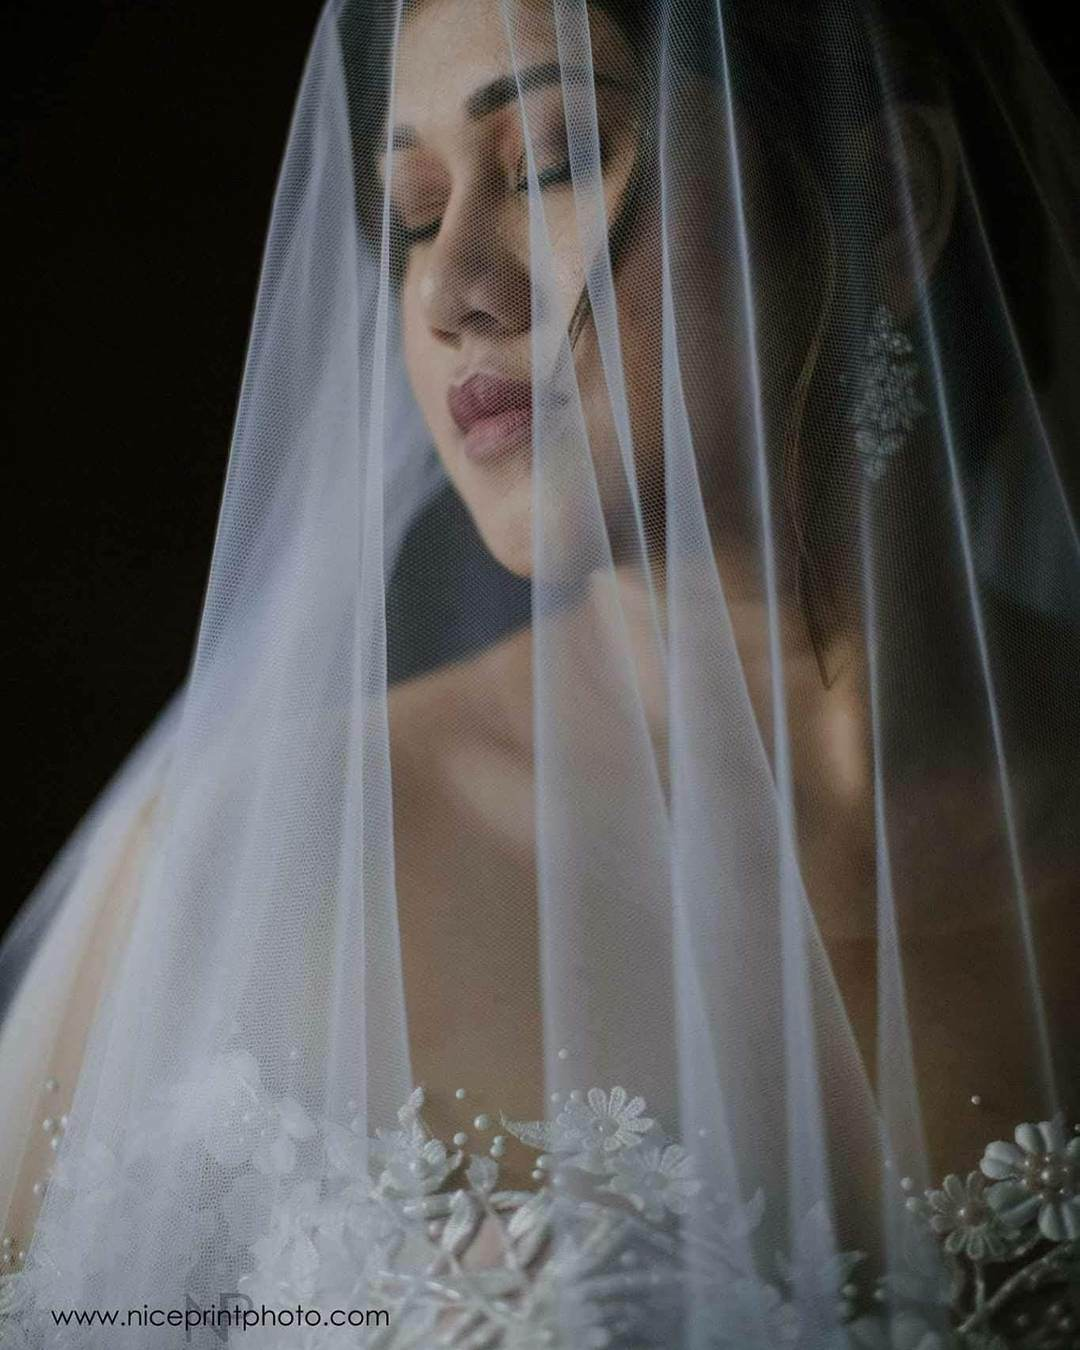 Wedding Gown Manila: Gowns By RoyAnne Camillia -a Portfolio Of Bridal And Debut